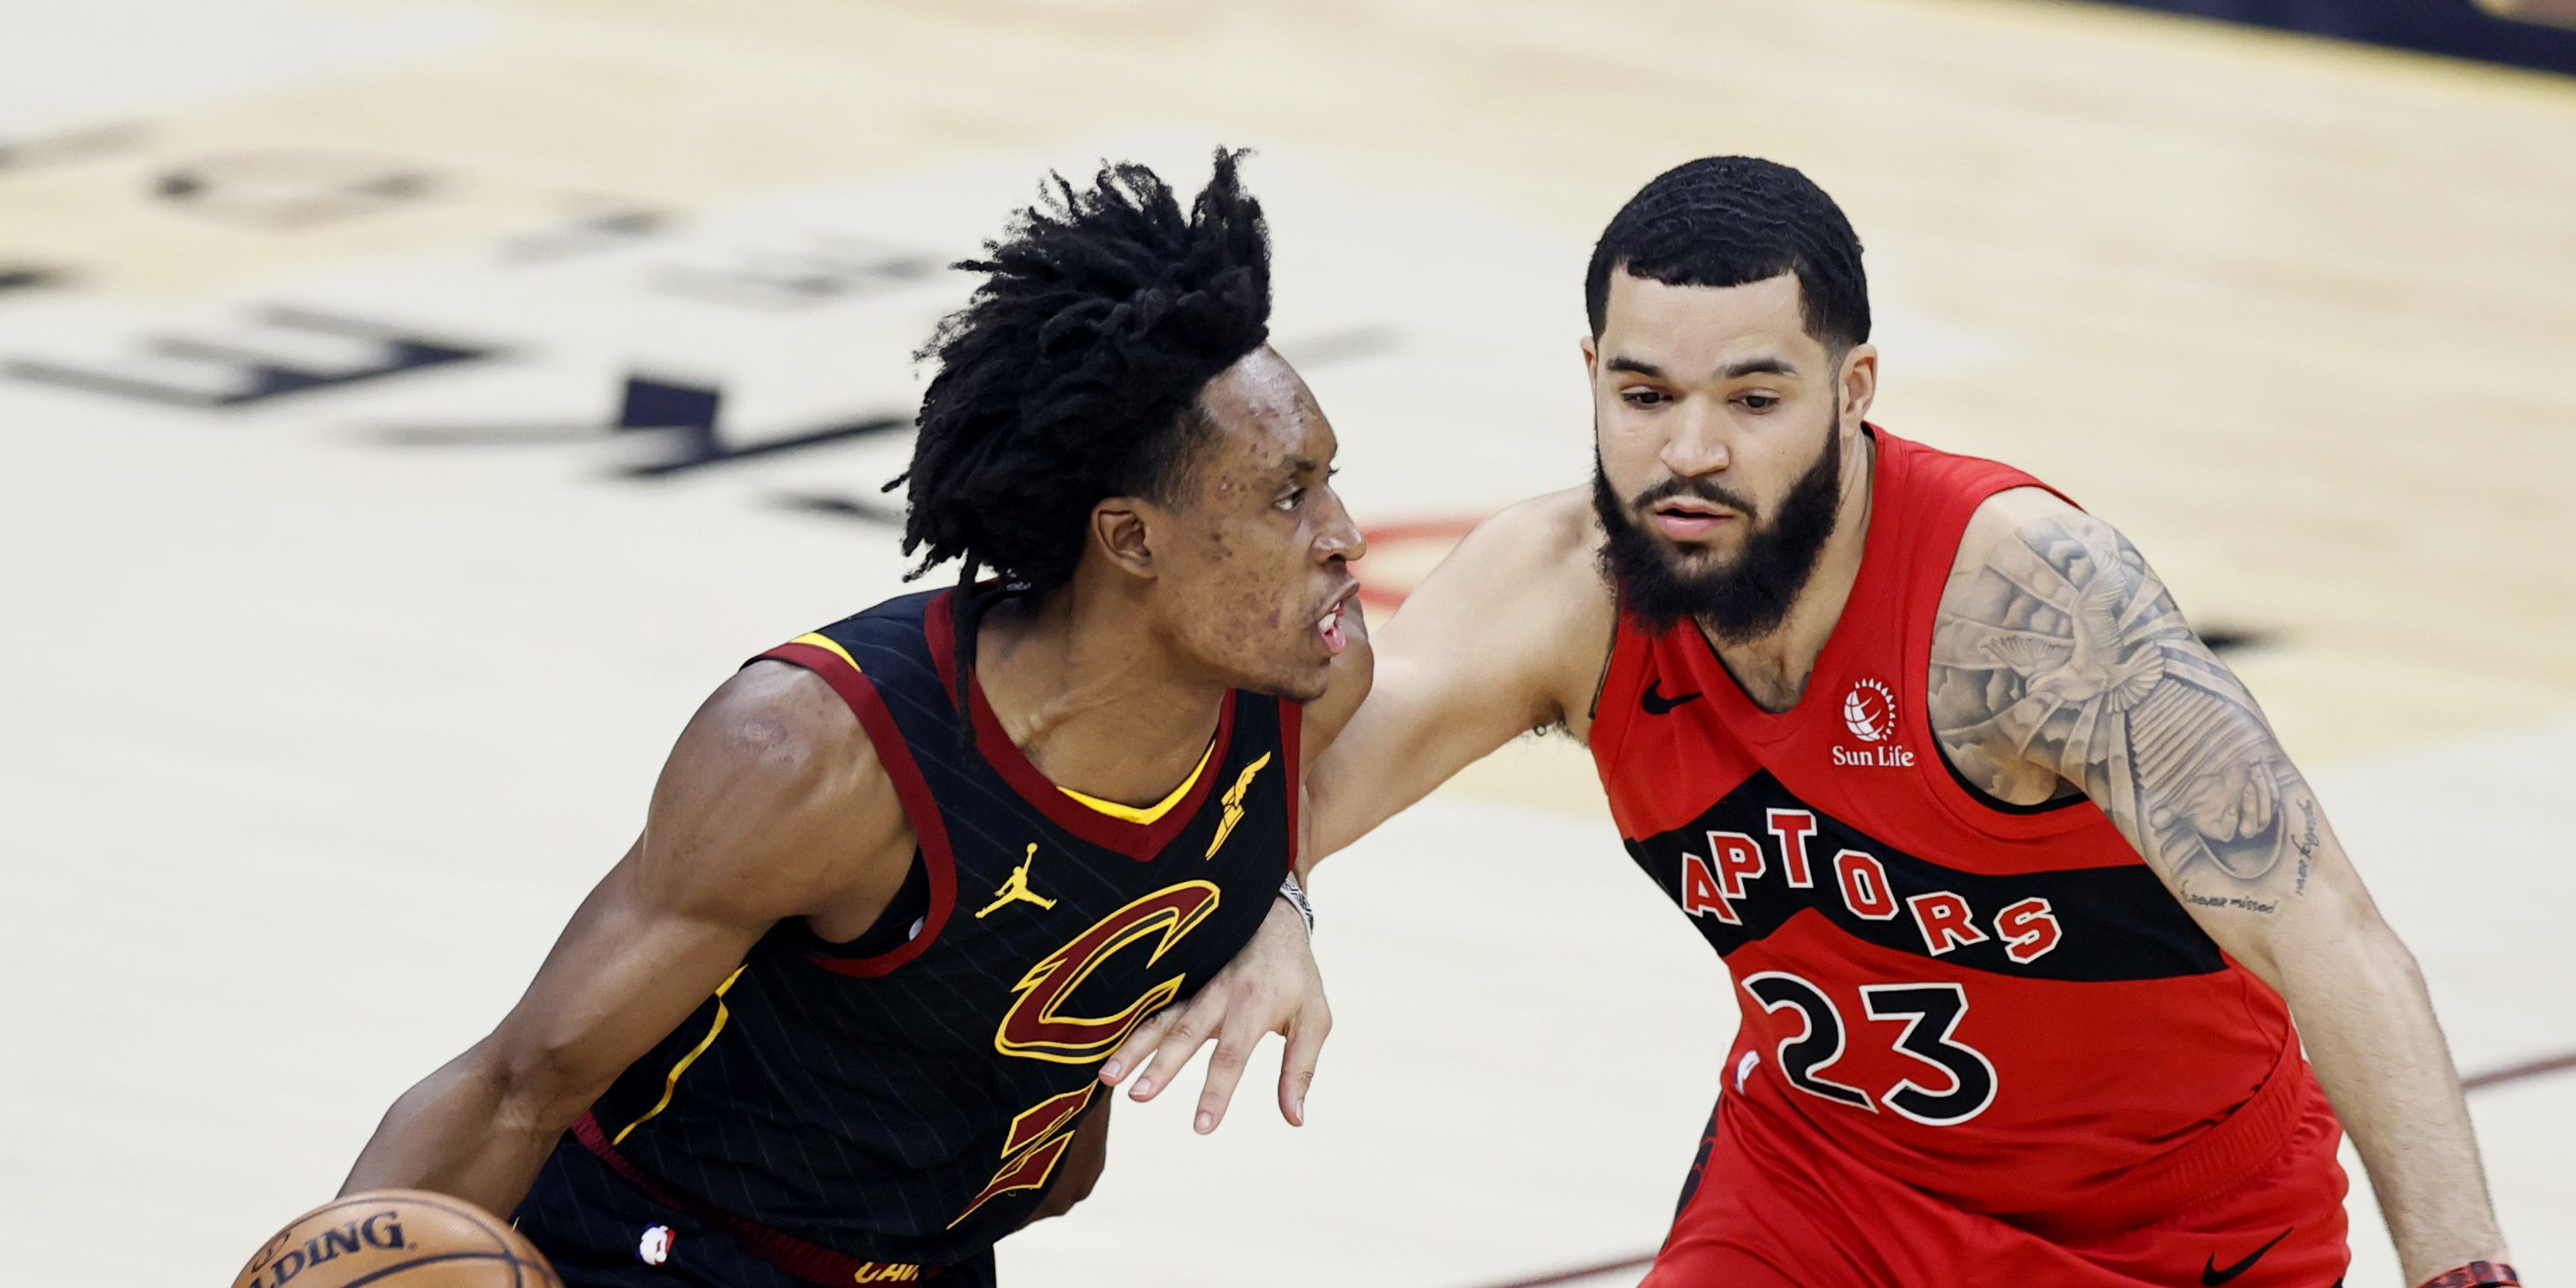 Sexton scores 36, Cavs hand Raptors eighth straight loss